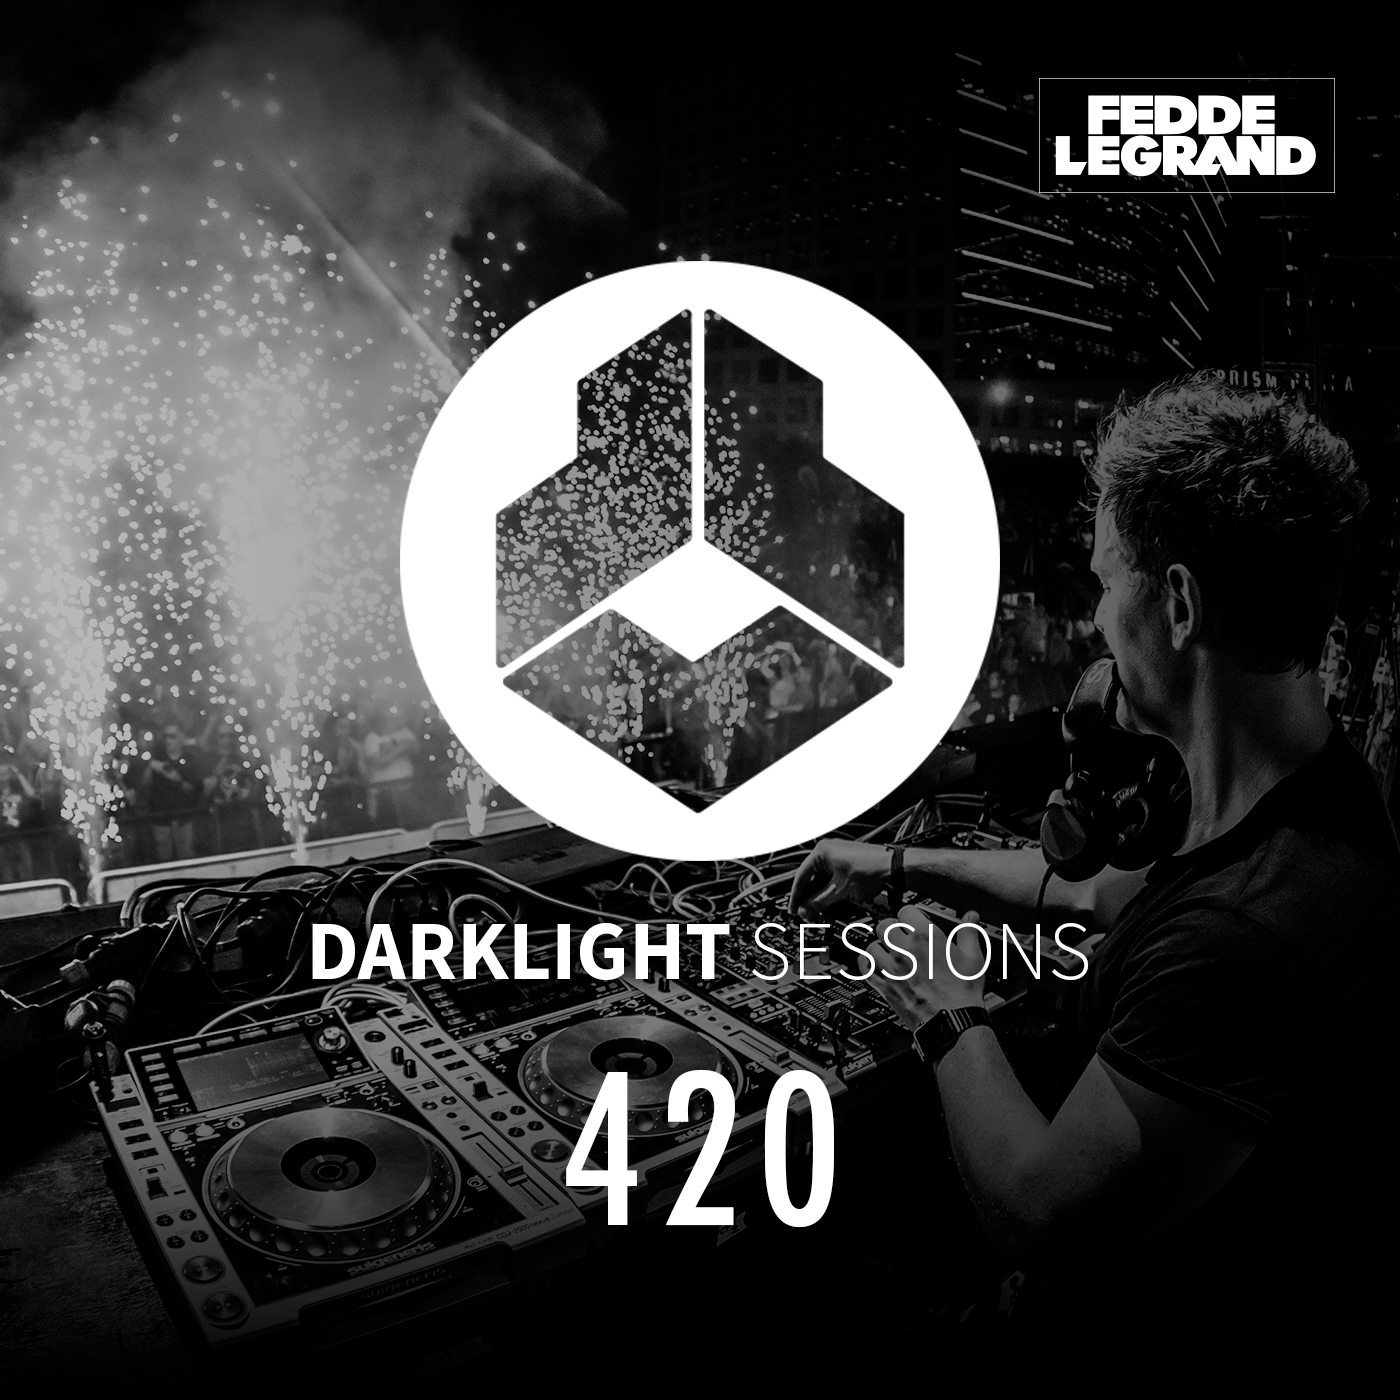 Darklight Sessions 420